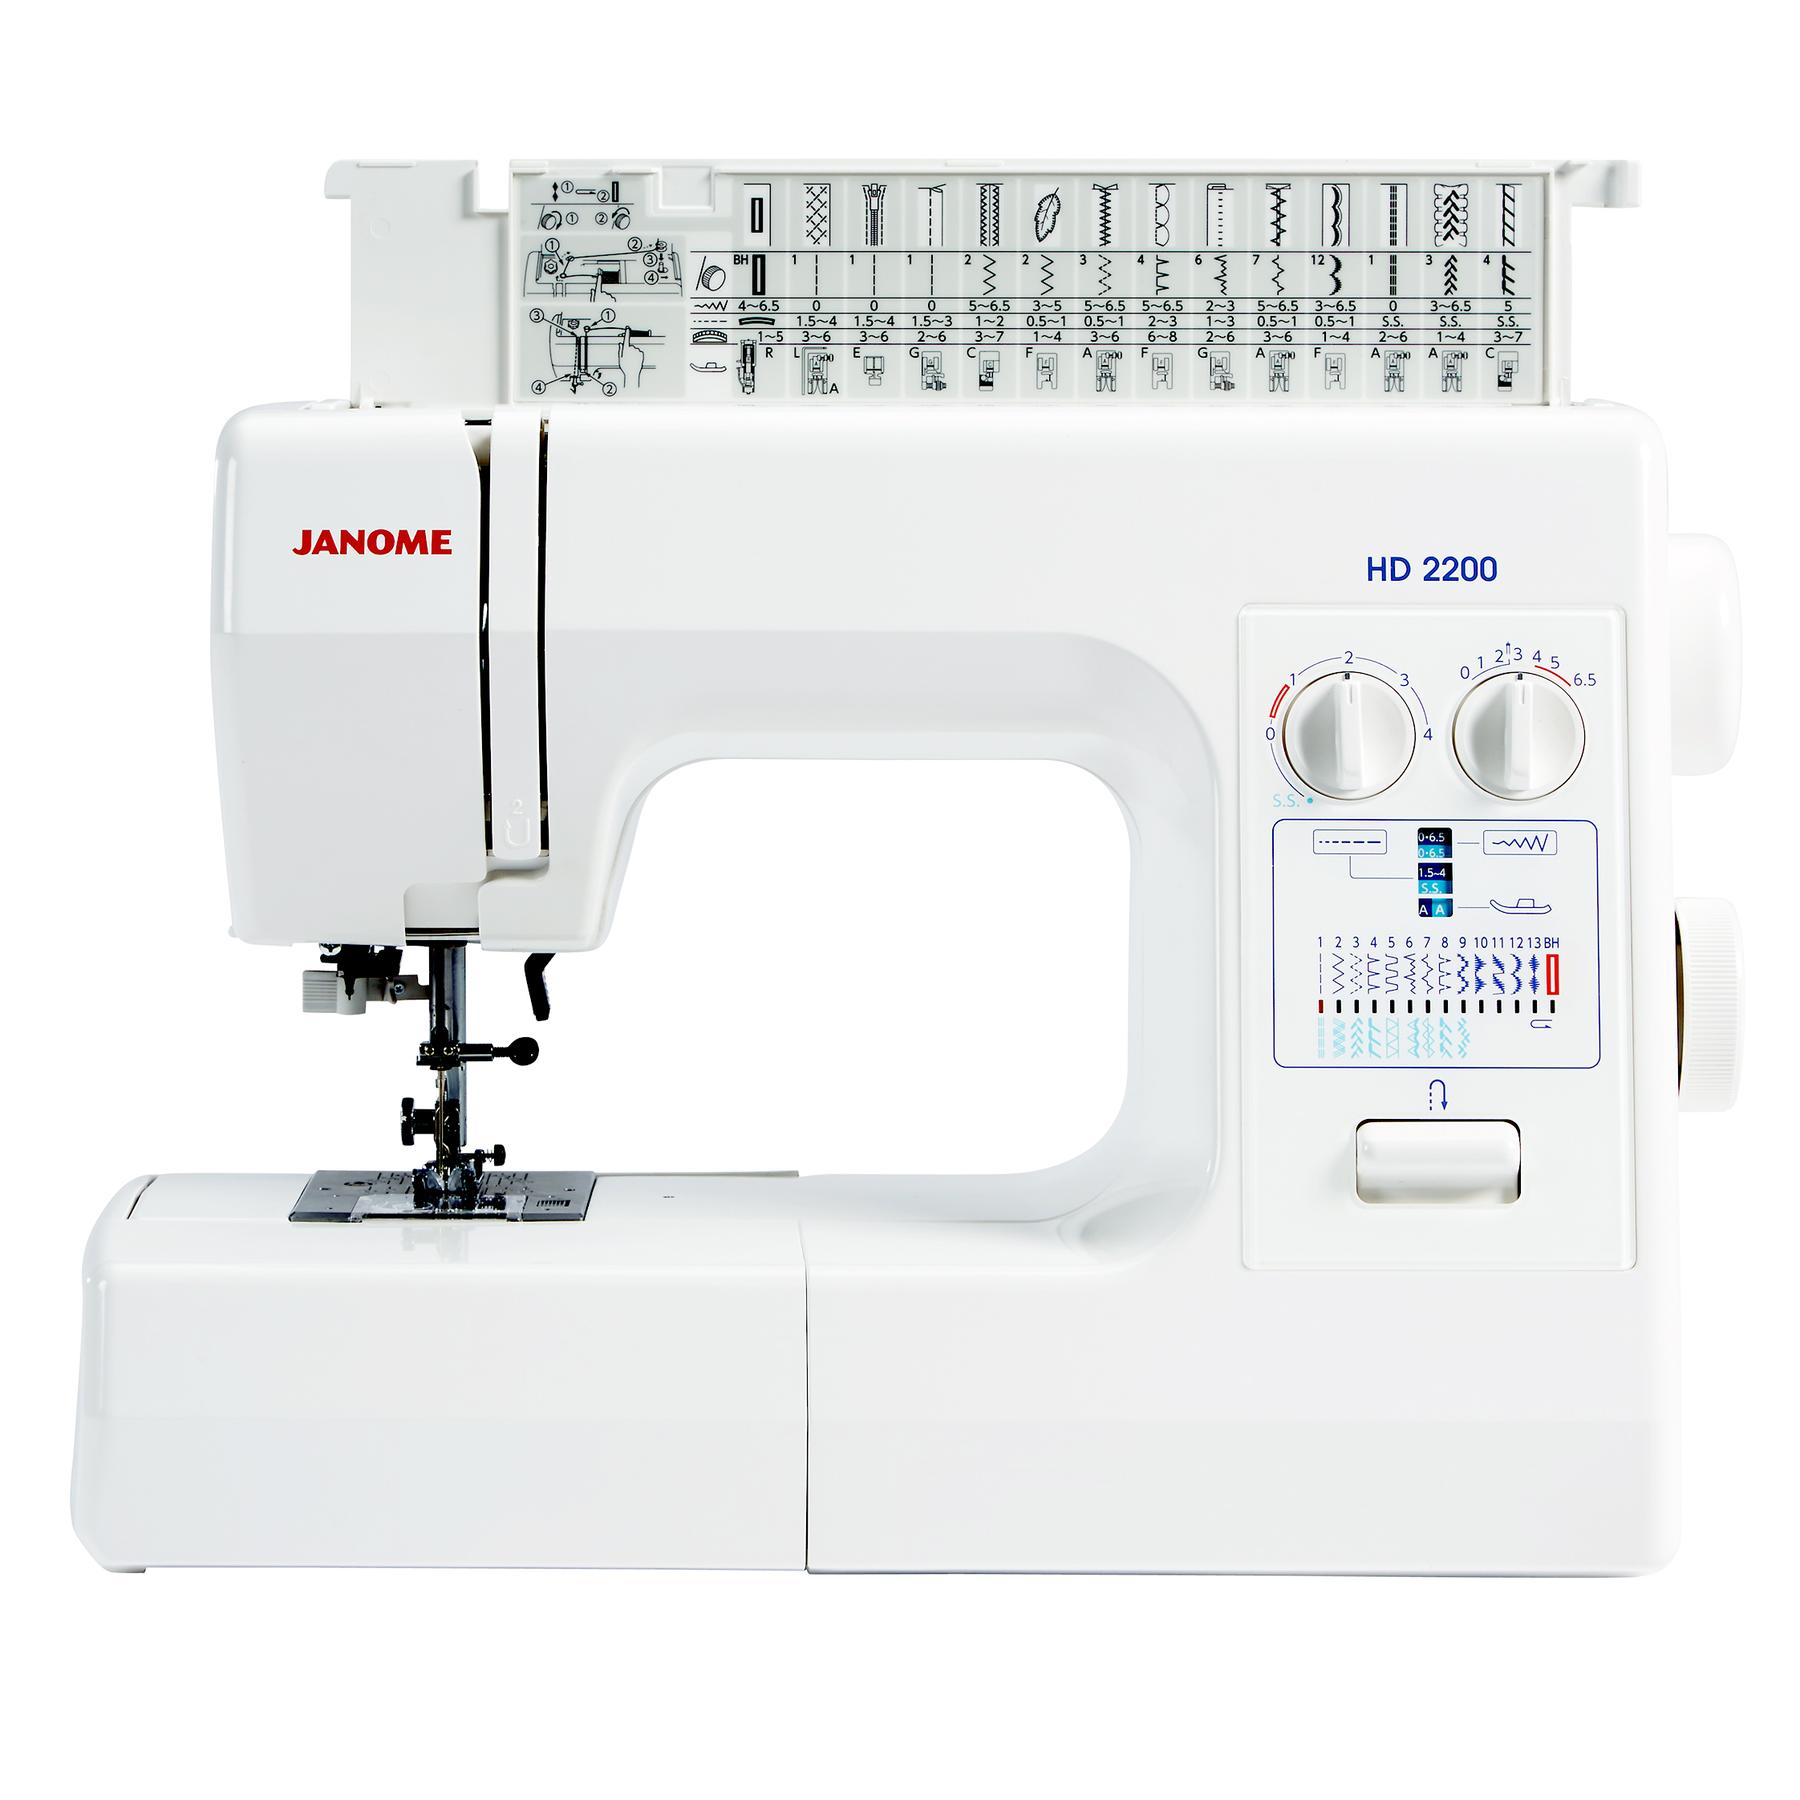 Janome HD2200 | Frank Nutt Sewing Machines Ltd | Buy online